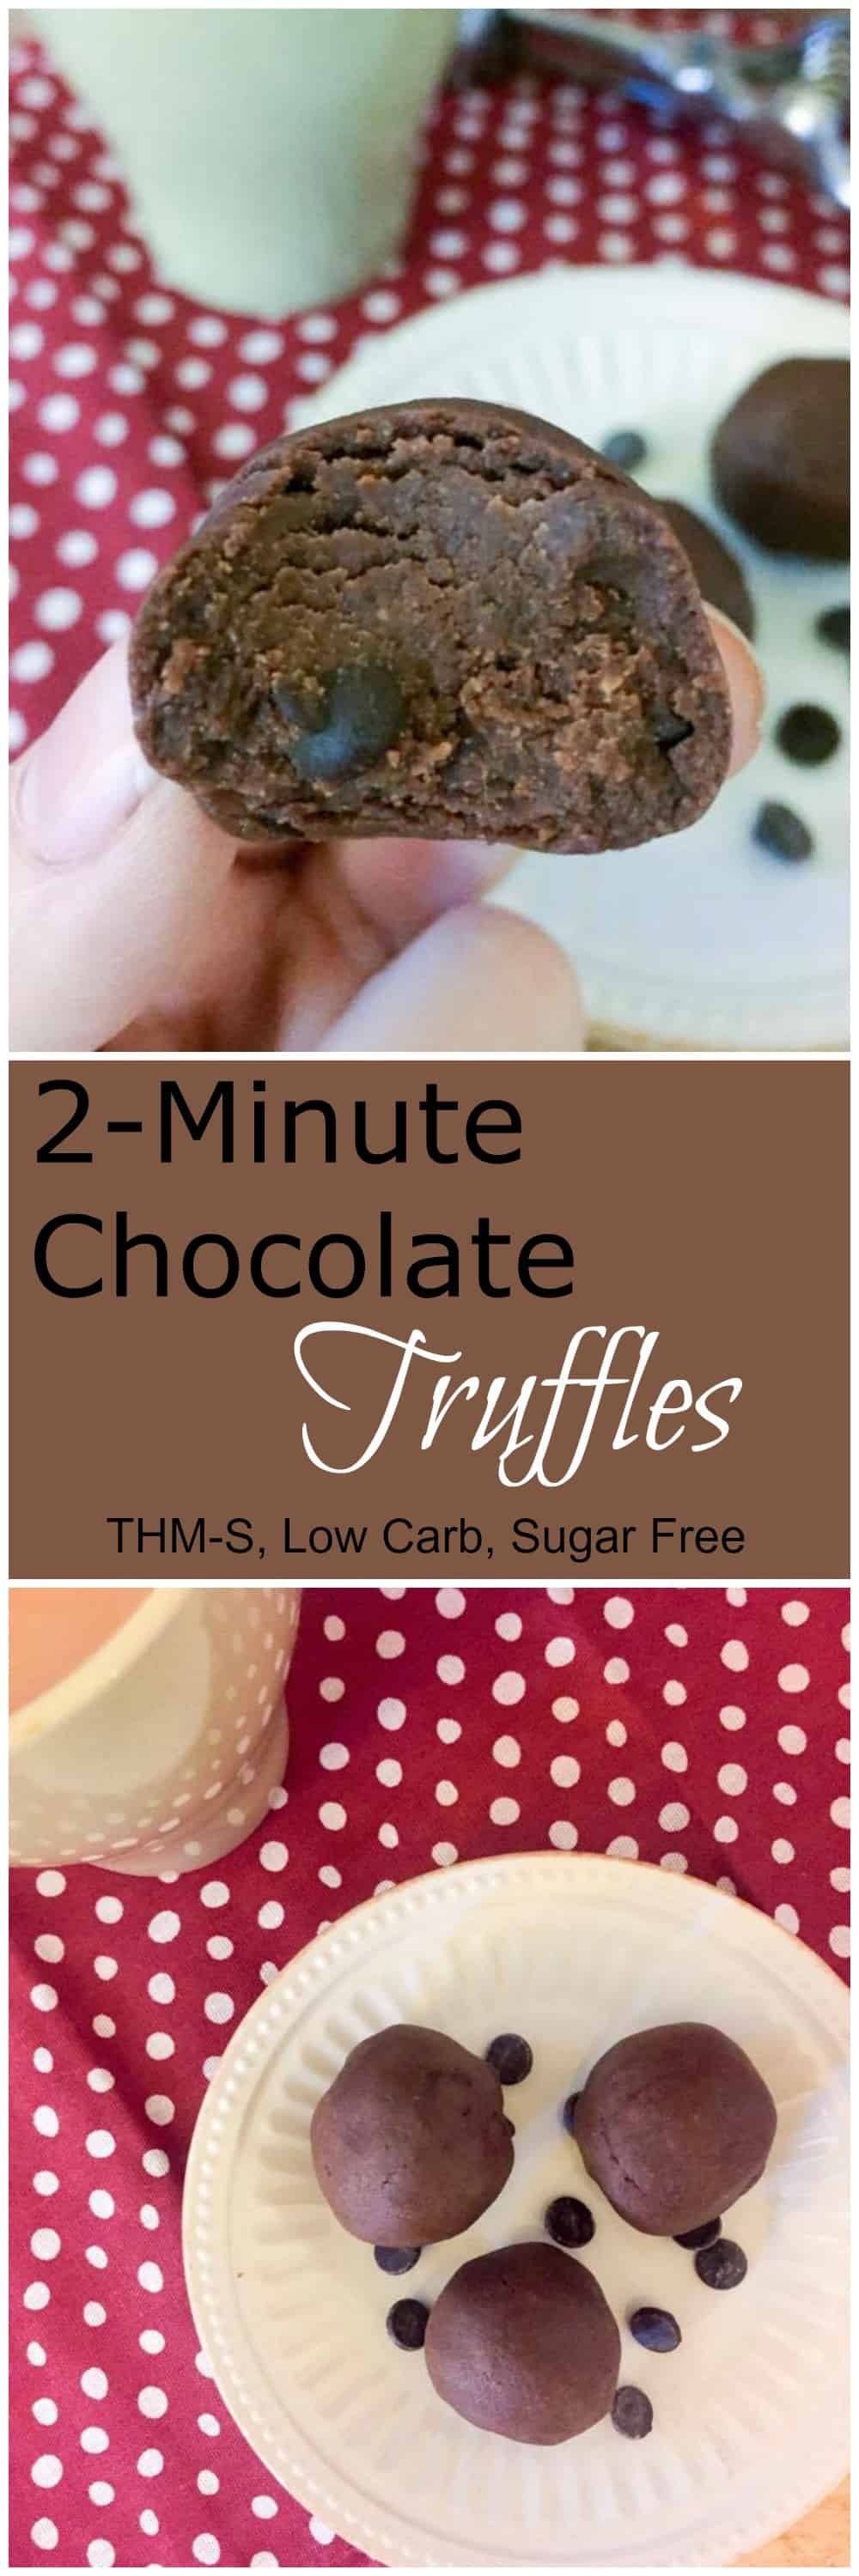 how to eat truffles chocolate